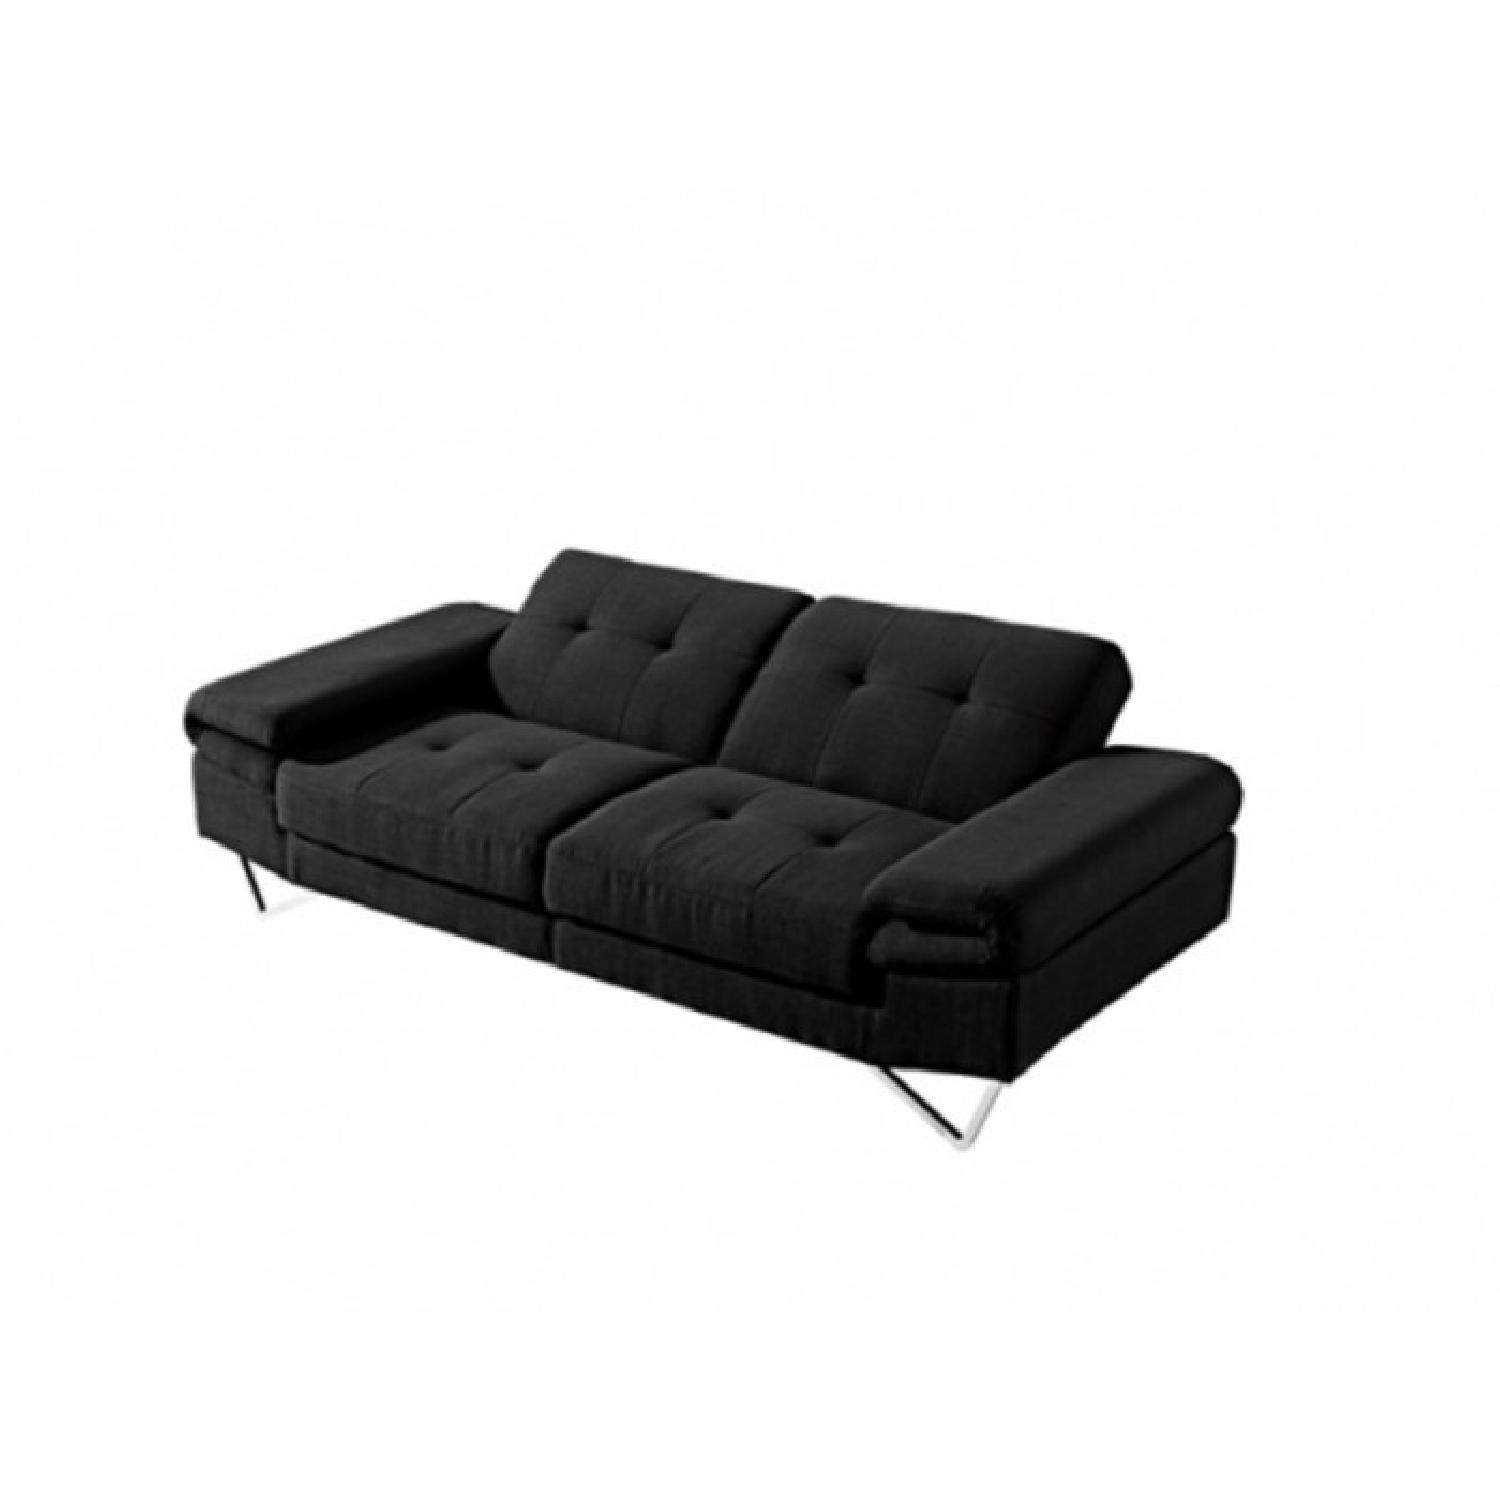 Smart Sofa The Smart Sofa Black Leather Sofa Bed Aptdeco